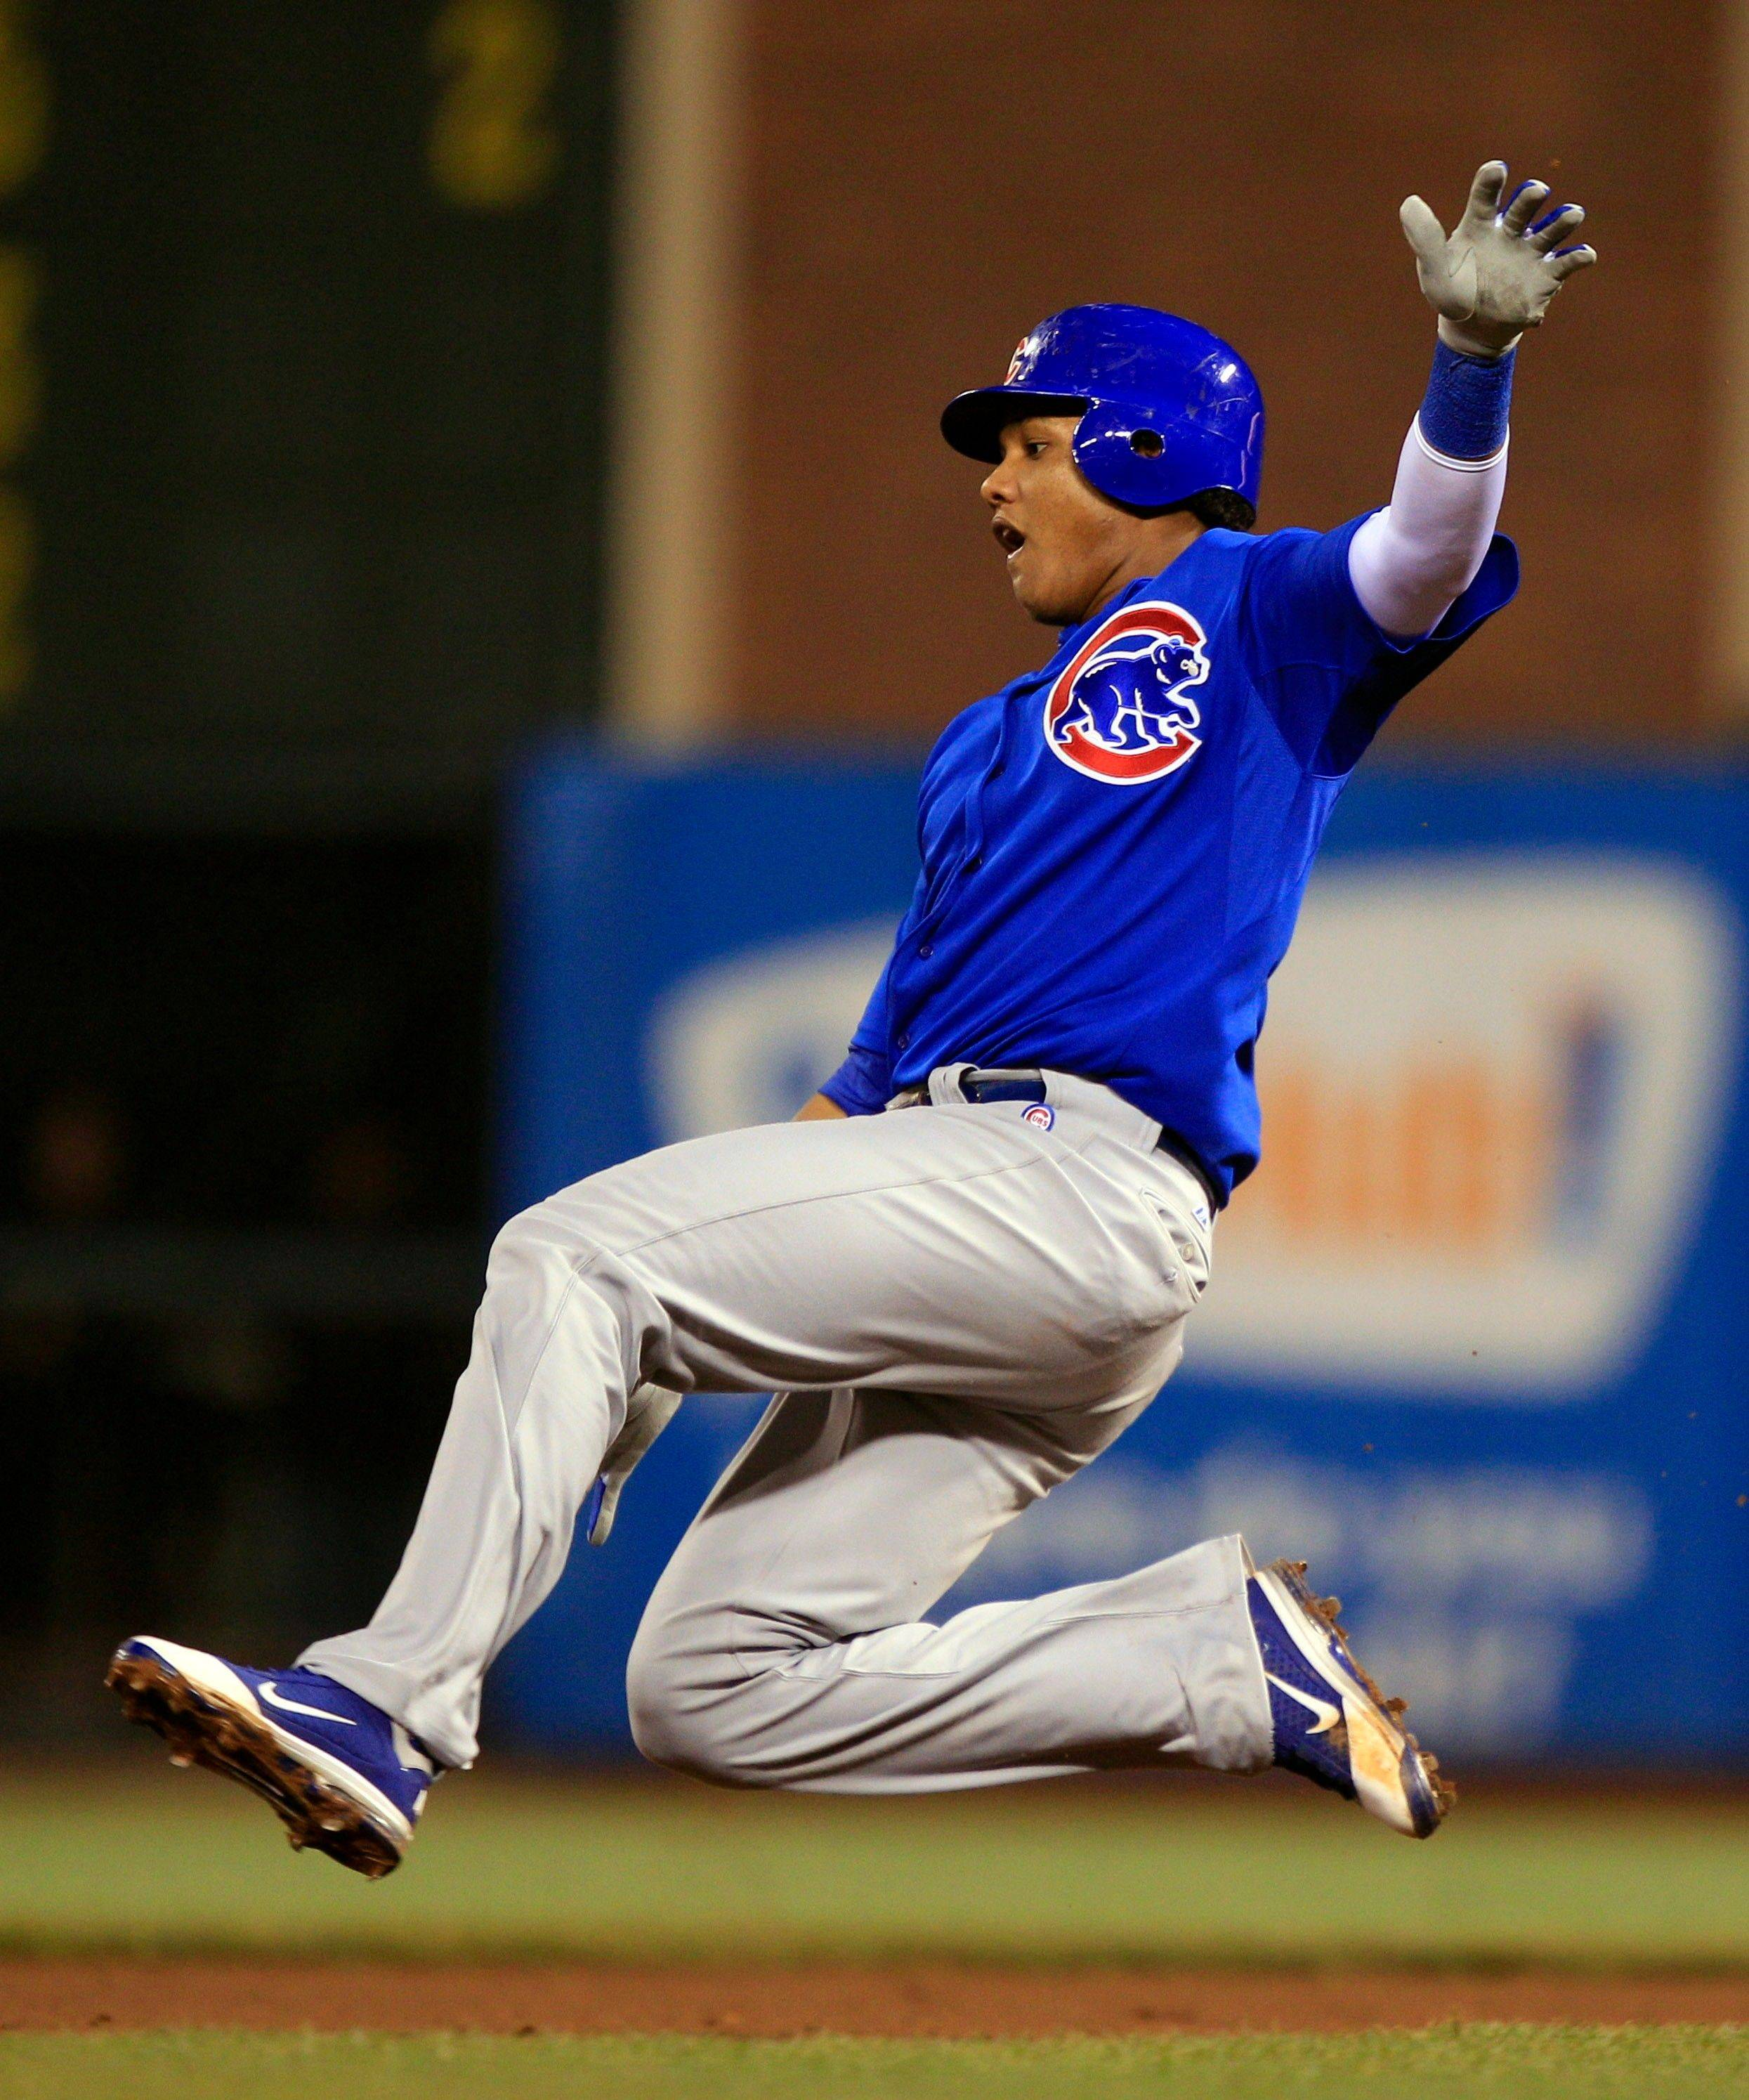 Will Cubs shortstop Starlin Castro reach 200 hits this season? It could happen. That's just one of the things to follow as the Cubs finish the final 25 games of the season.